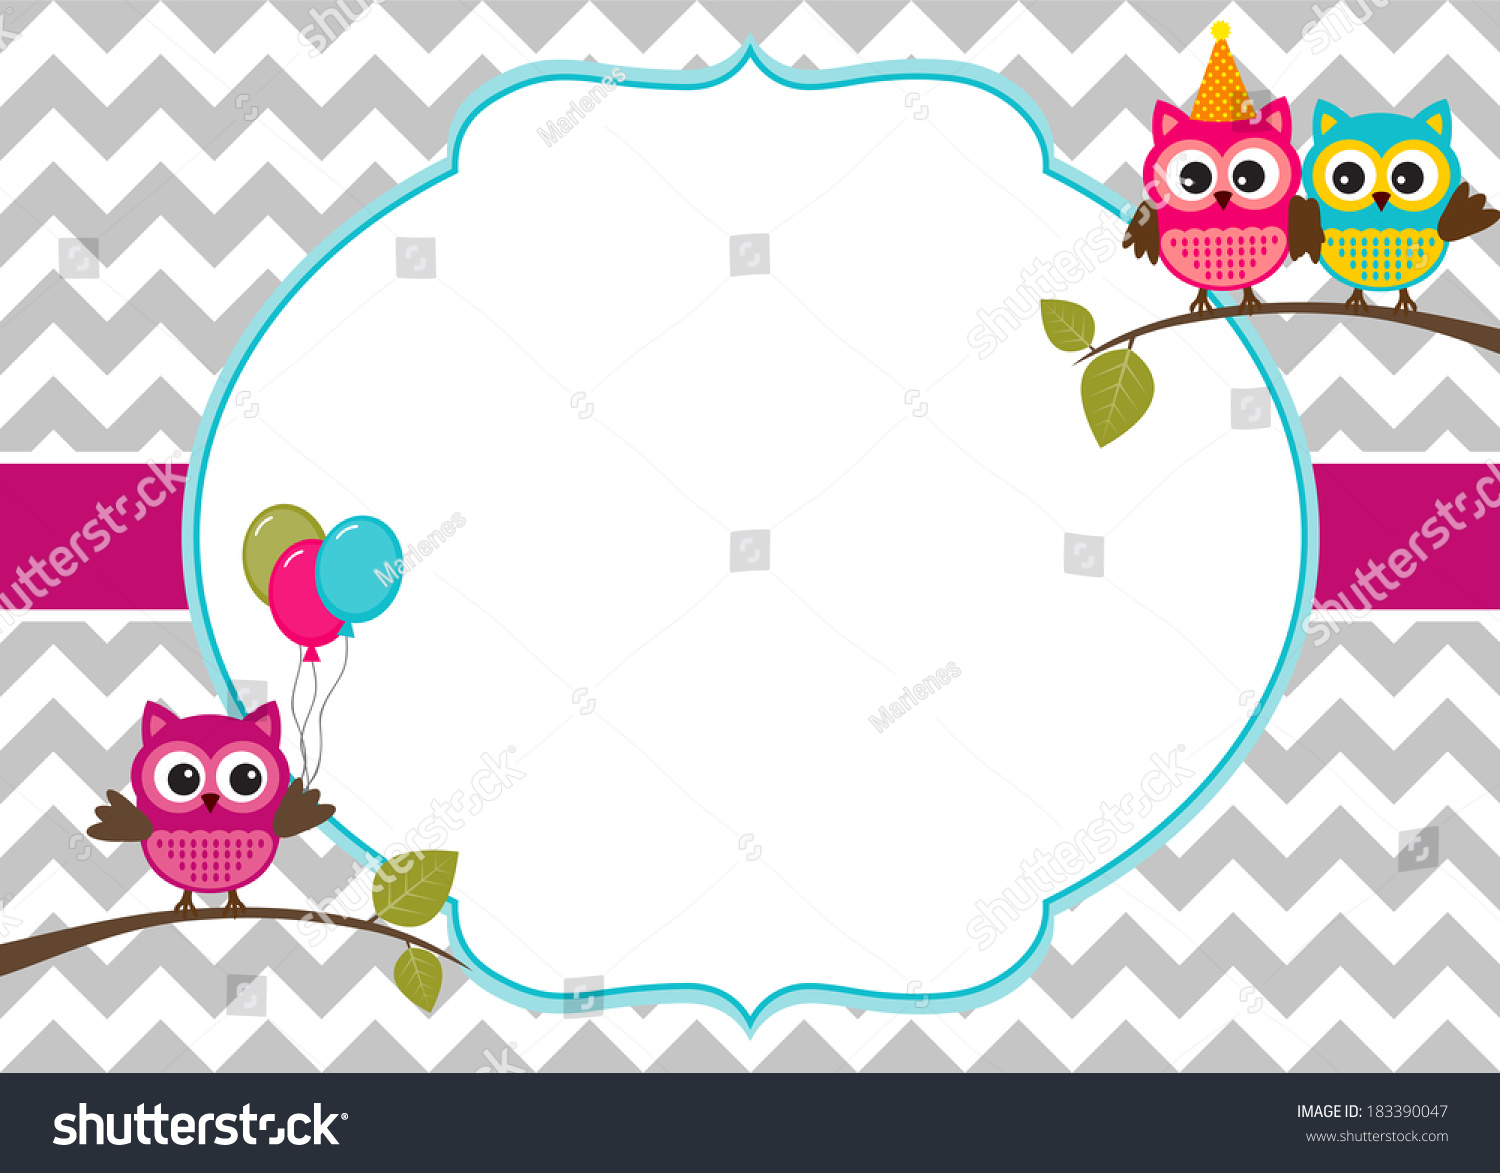 owl party invitation card template white stock vector   - owl party invitation card template with white frame for your text